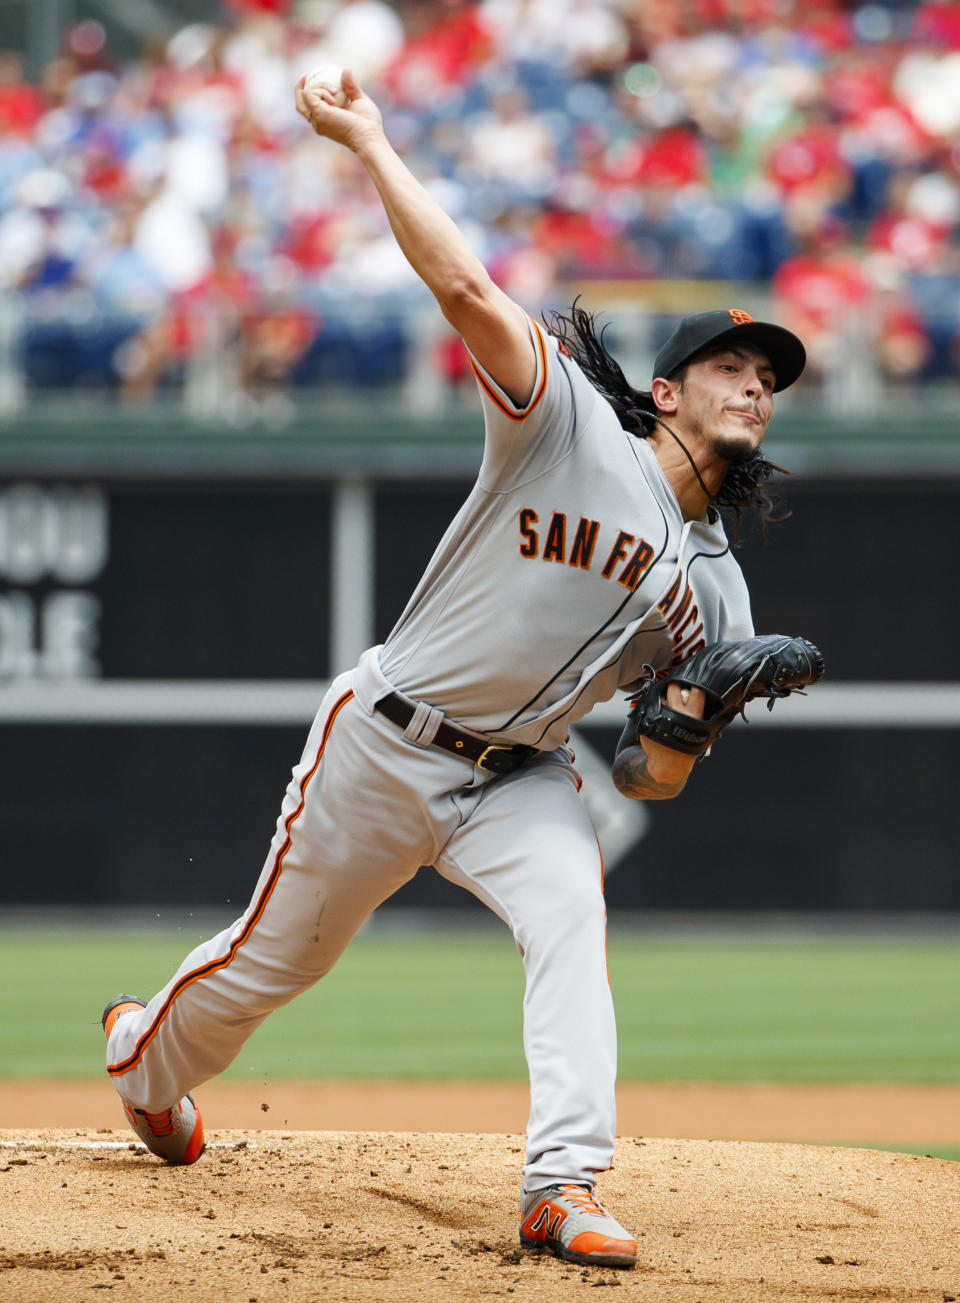 San Francisco Giants starting pitcher Dereck Rodriguez throws a pitch during the first inning of a baseball game against the Philadelphia Phillies, Thursday, Aug. 1, 2019, in Philadelphia. (AP Photo/Chris Szagola)